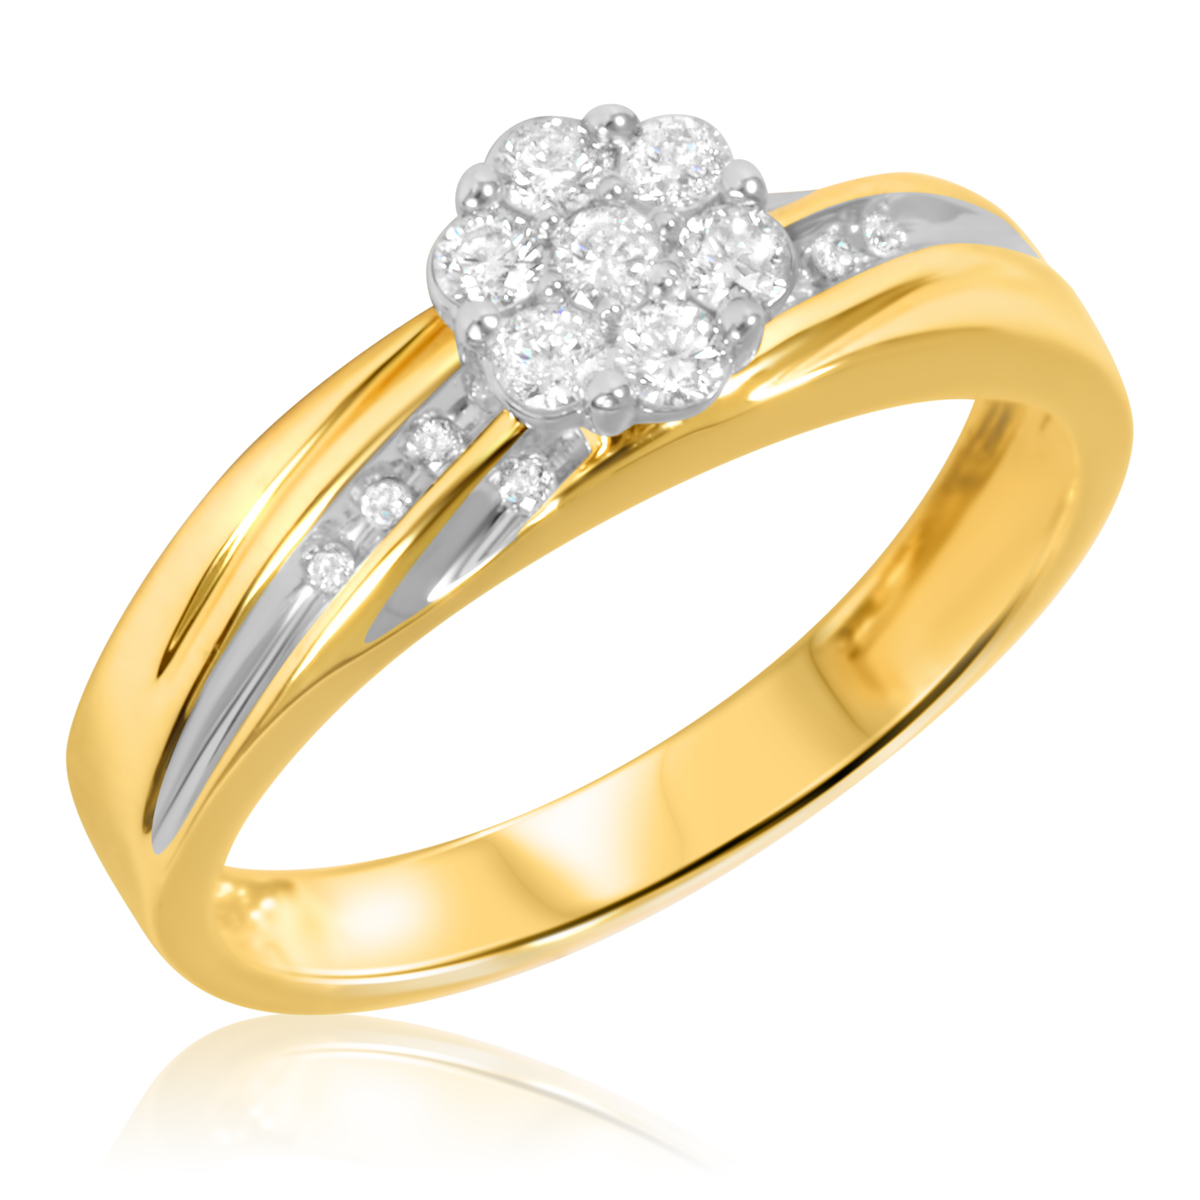 1 4 carat t w engagement ring 14k yellow